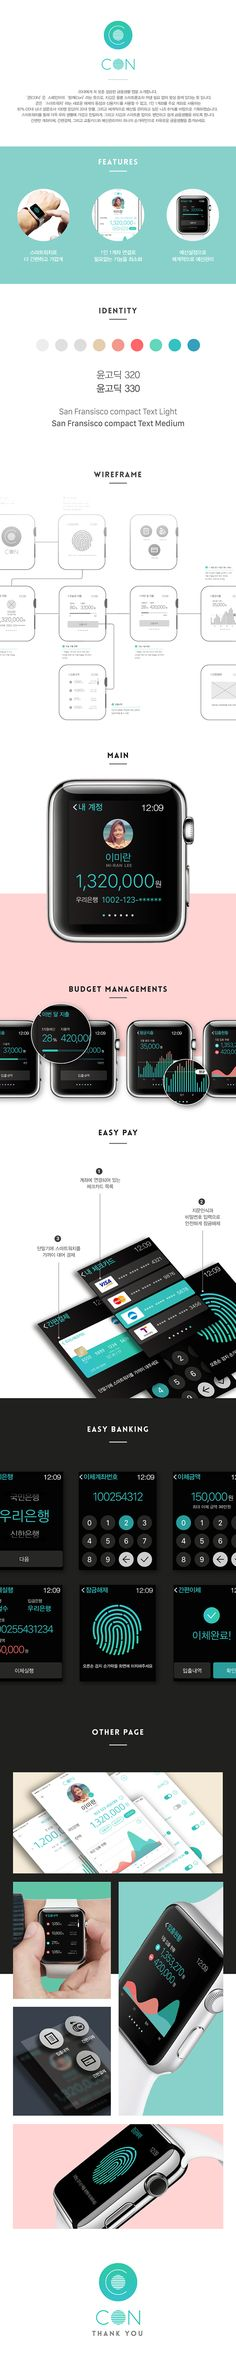 CON App 2.0 is a neat financial life living app for 20's.